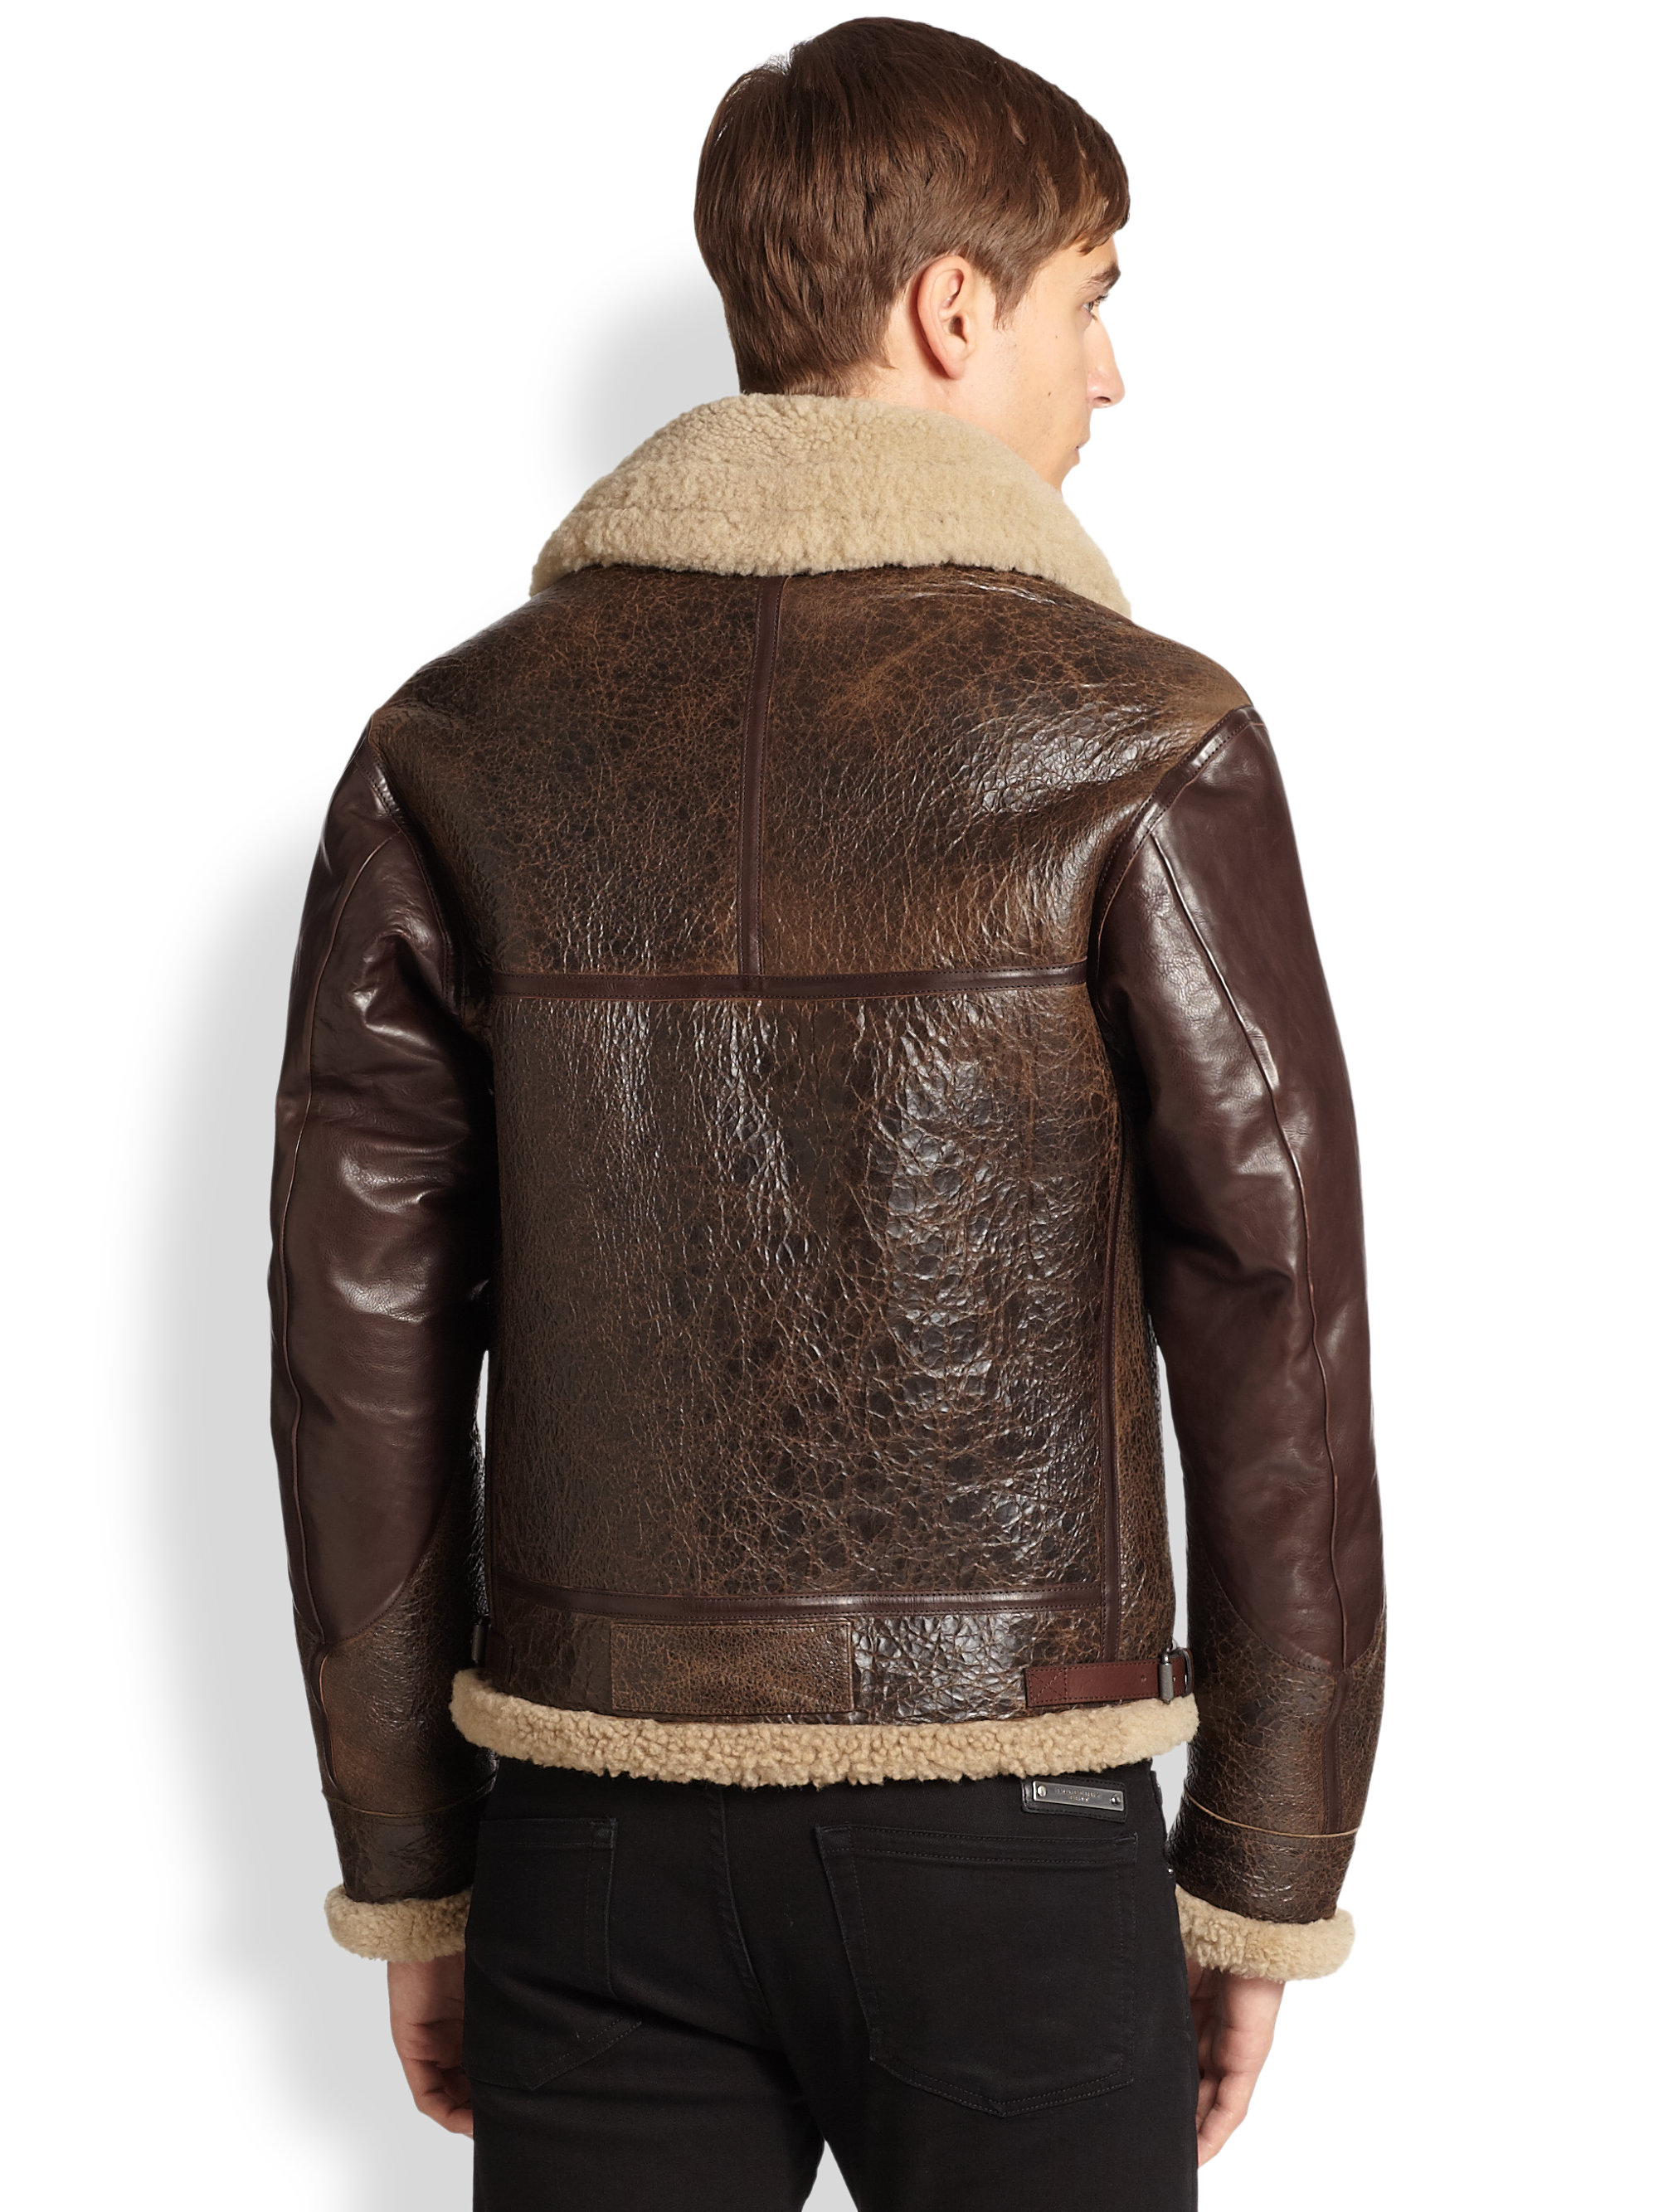 burberry brit ormsby leather shearling aviator jacket in brown for men lyst. Black Bedroom Furniture Sets. Home Design Ideas